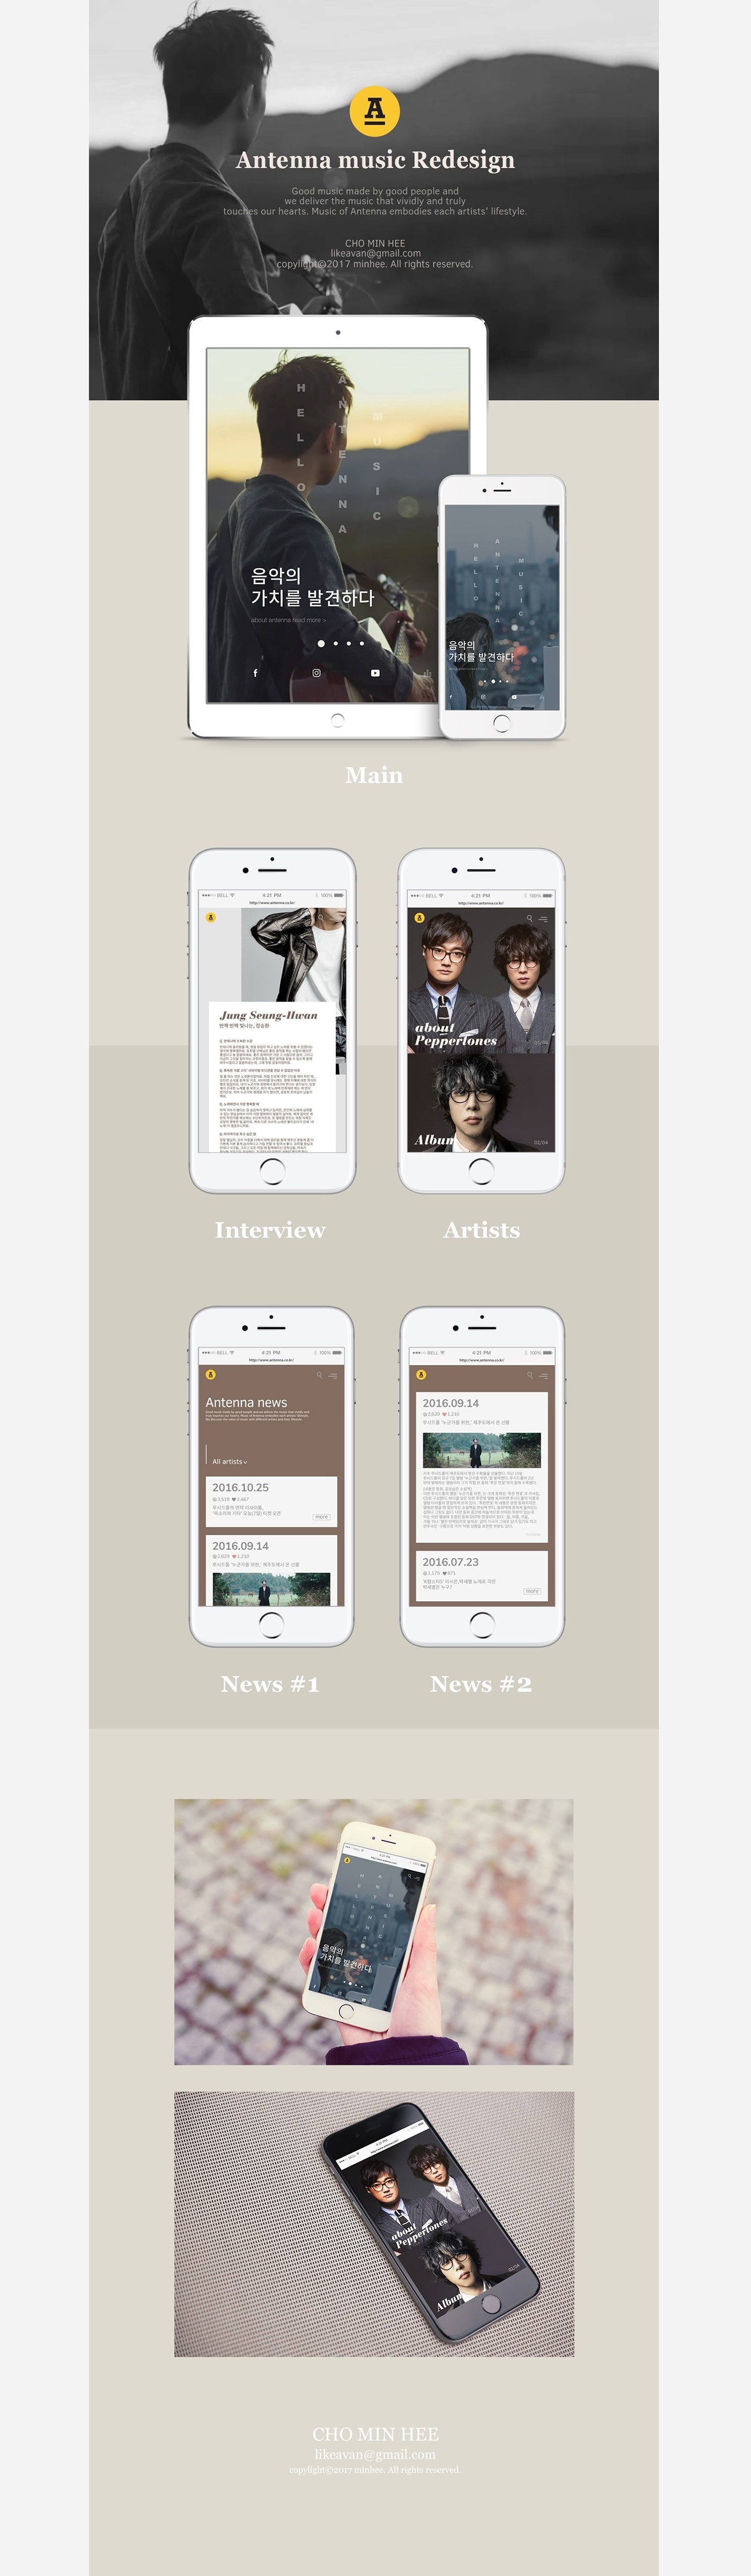 욱스웹디자인아카데미-Antenna music mobile version redesign - Design by - Cho on Behance